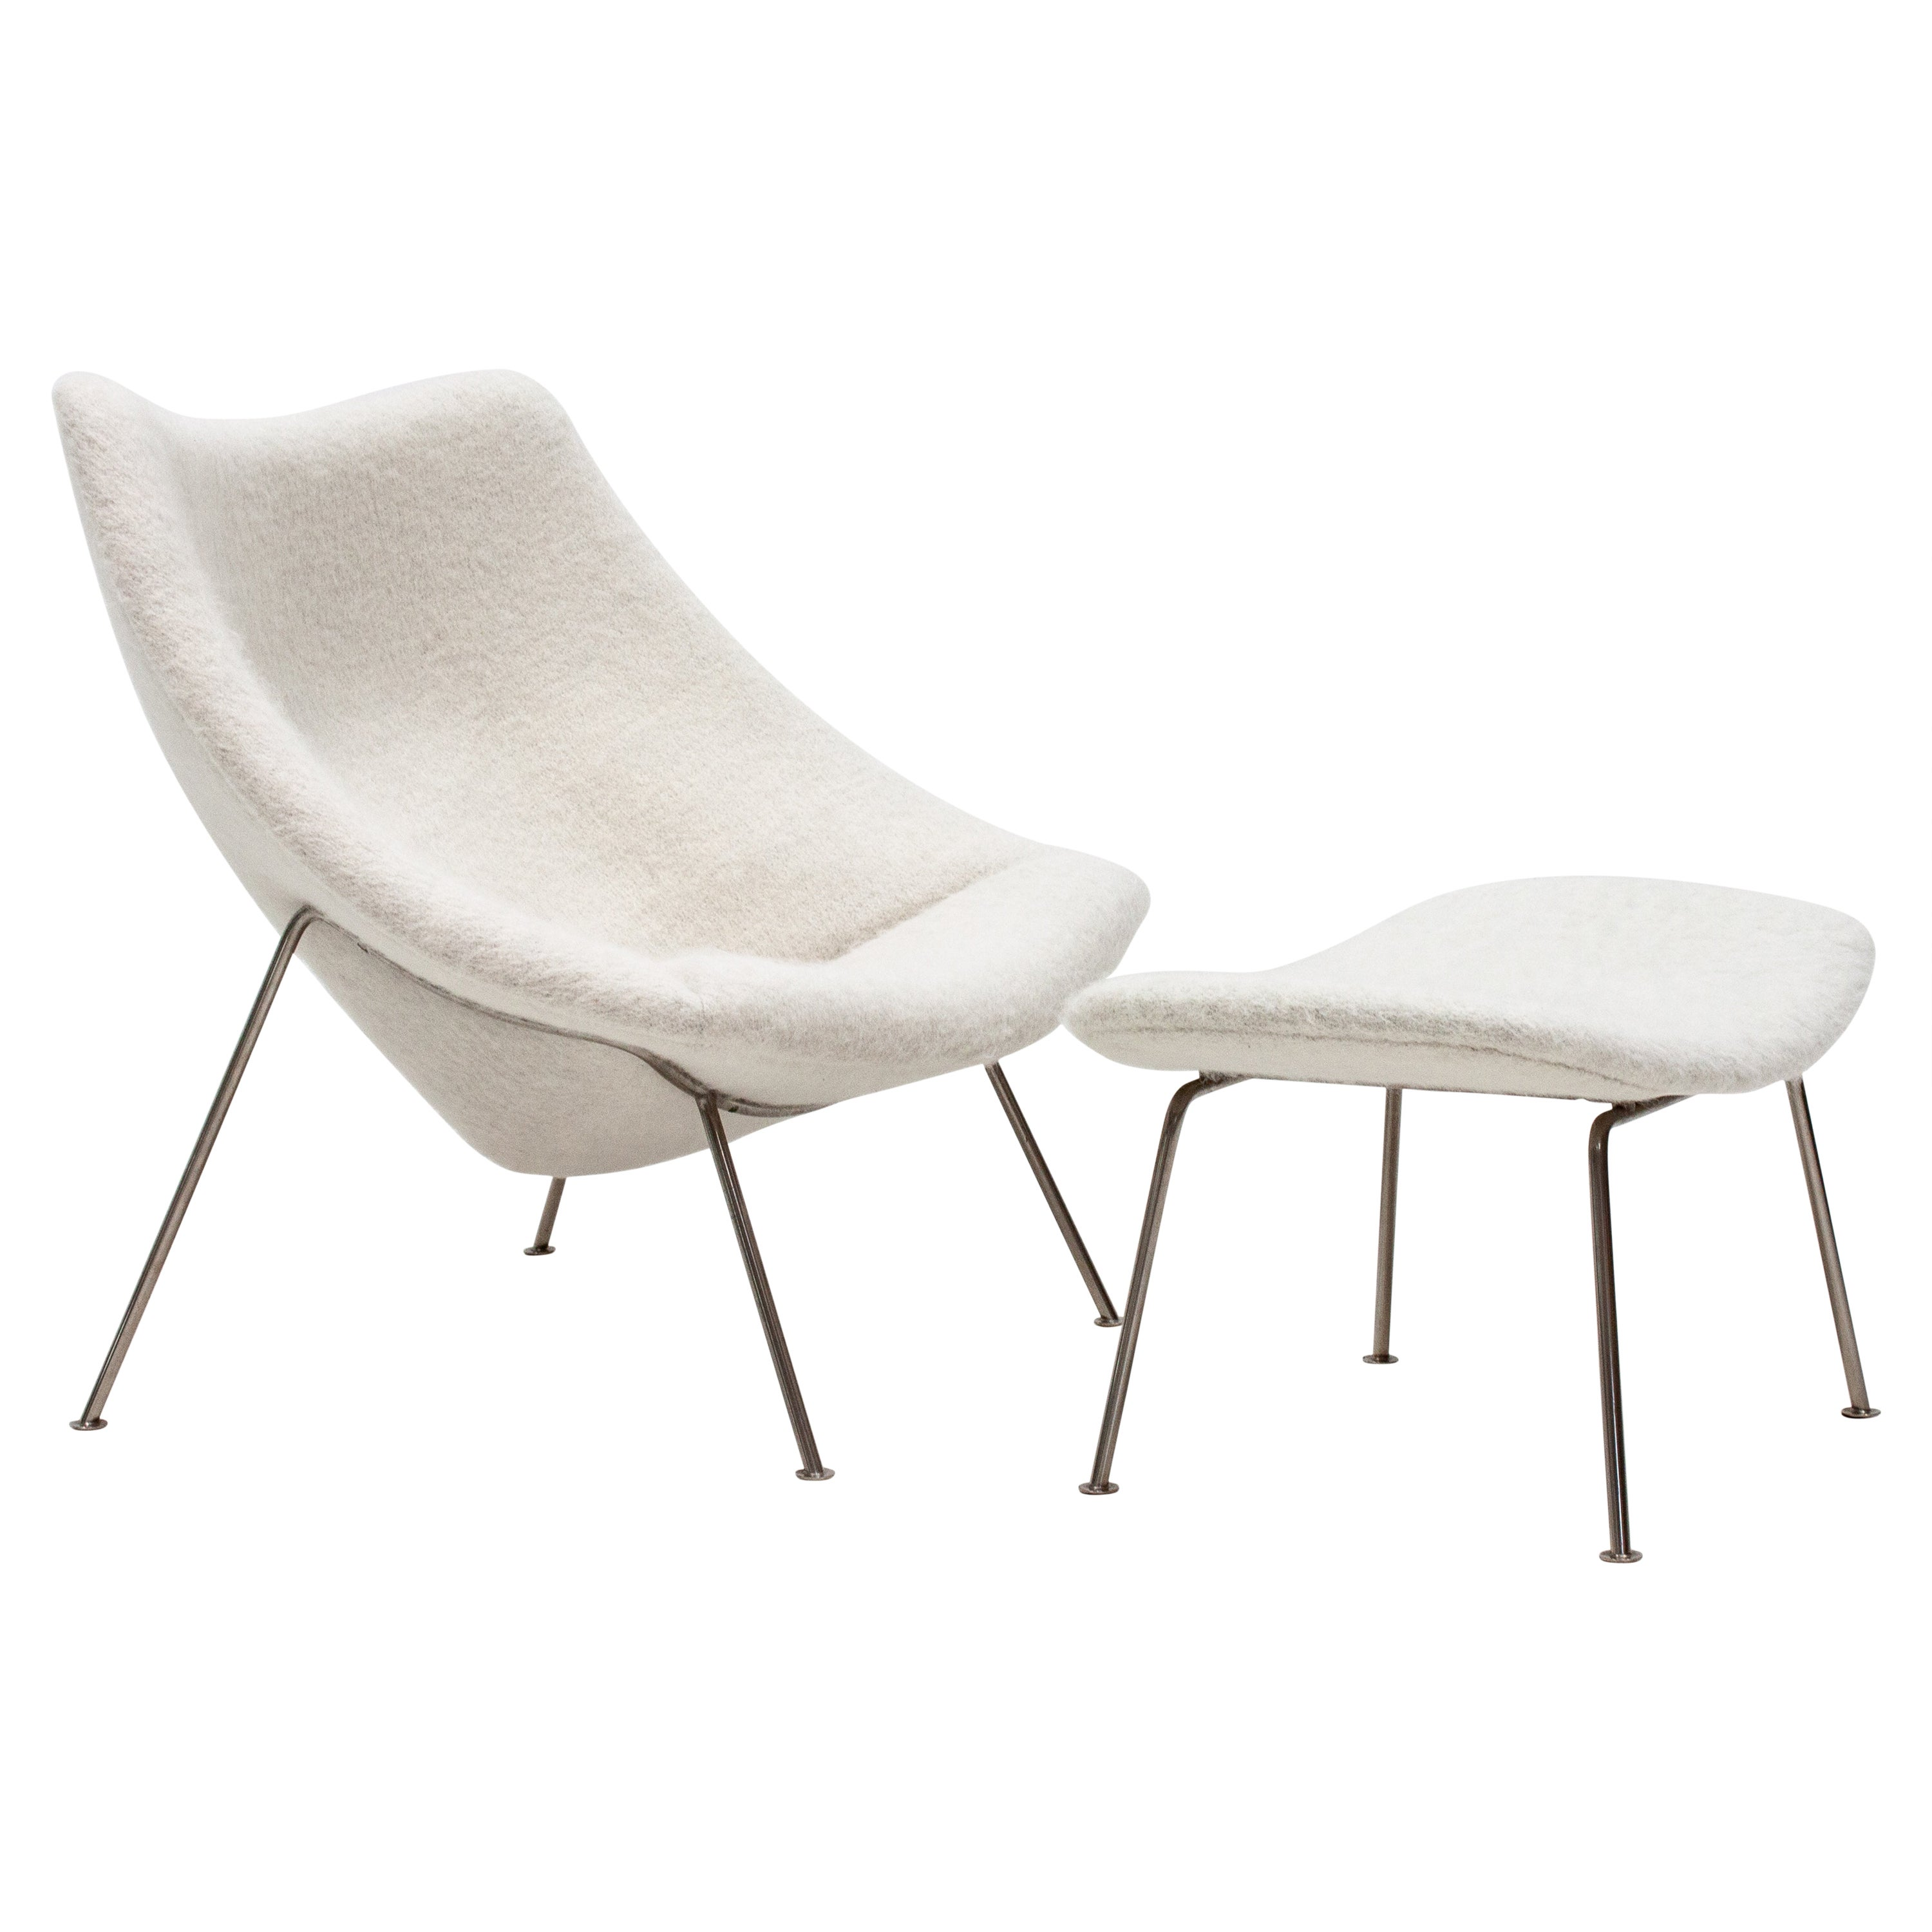 "Pierre Paulin Large ""Oyster"" Chair and Footstool for Artifort in Pierre Frey"